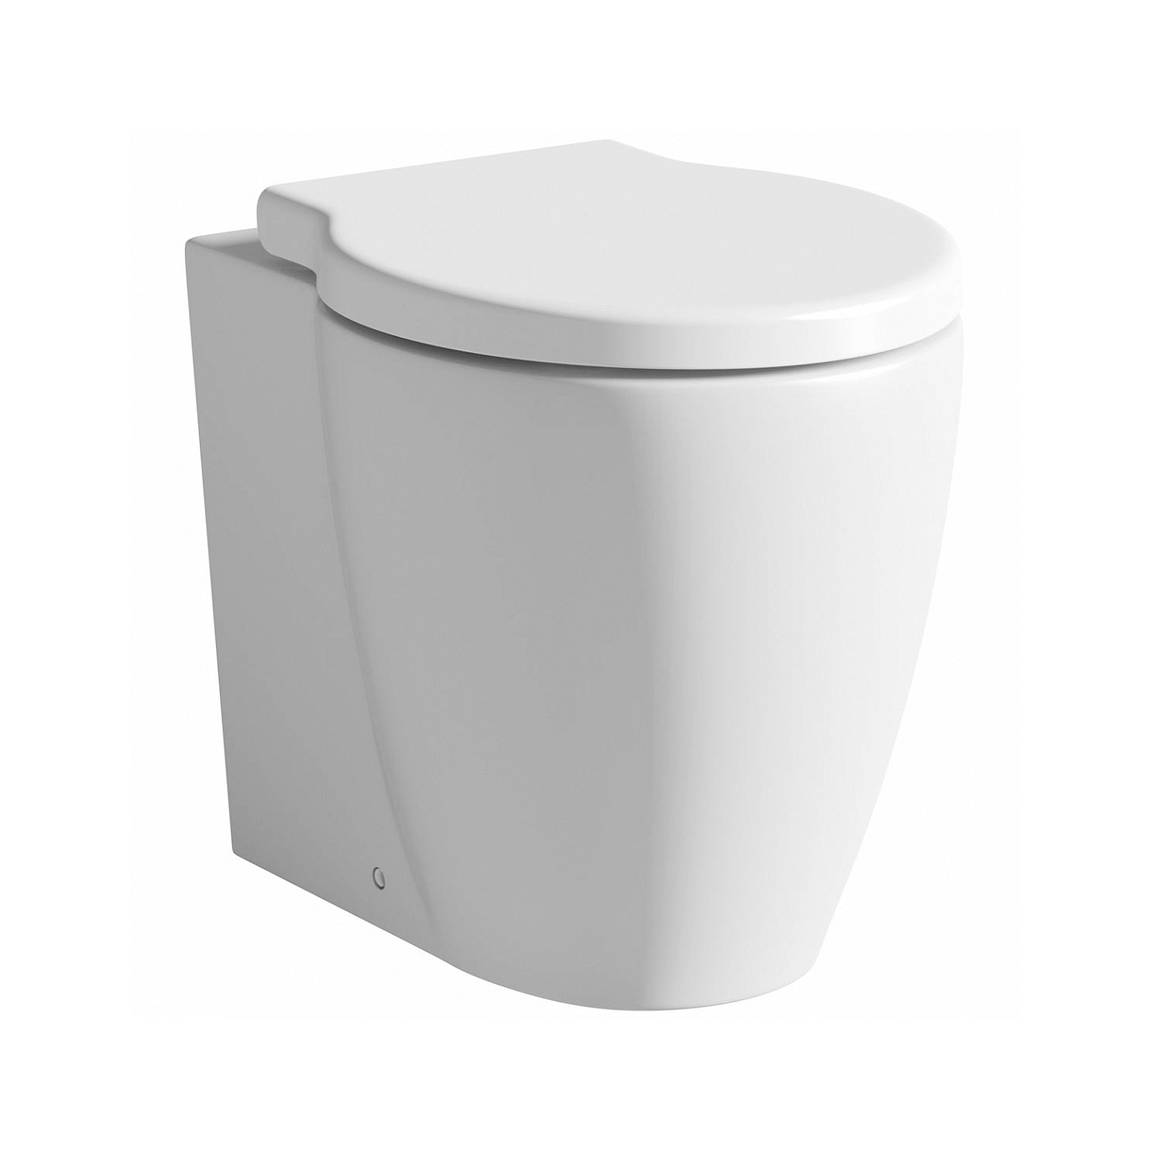 Image of Maine Back to Wall Toilet inc Luxury Soft Close Seat